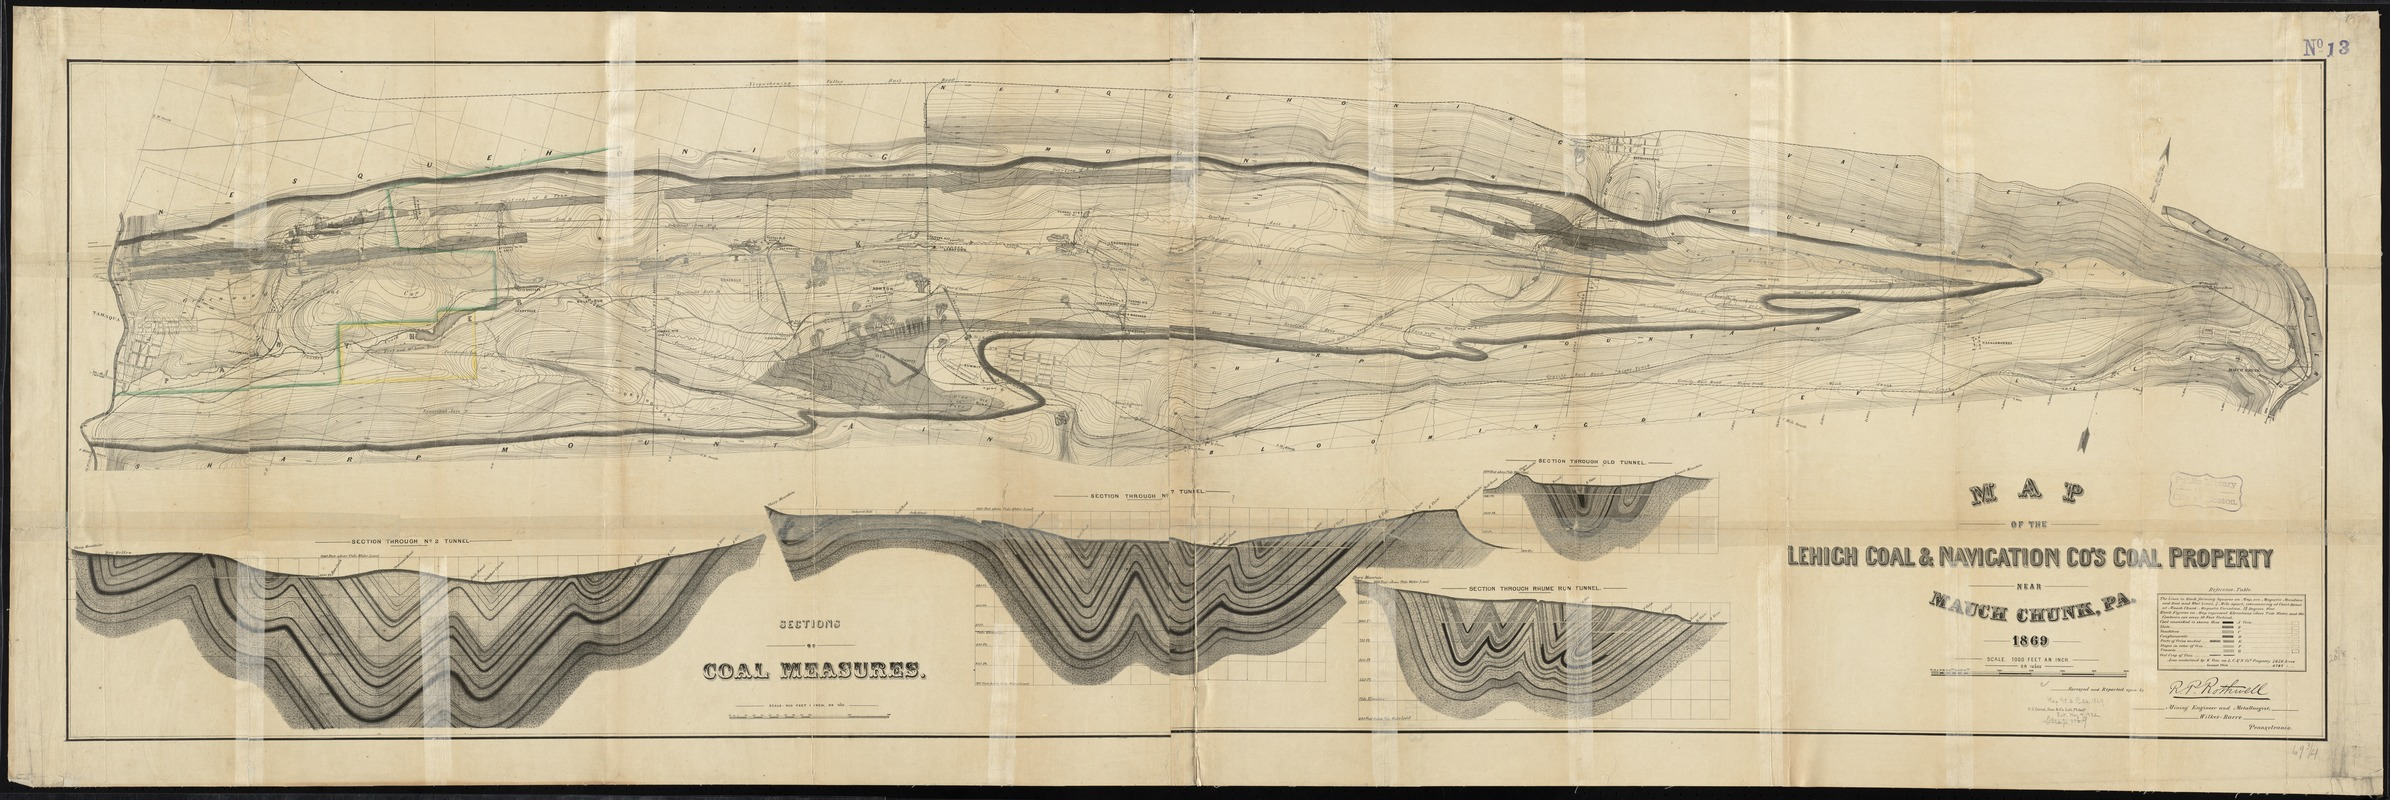 Map of the Lehigh Coal & Navigation Co.'s coal property near Mauch Chunk, Pa